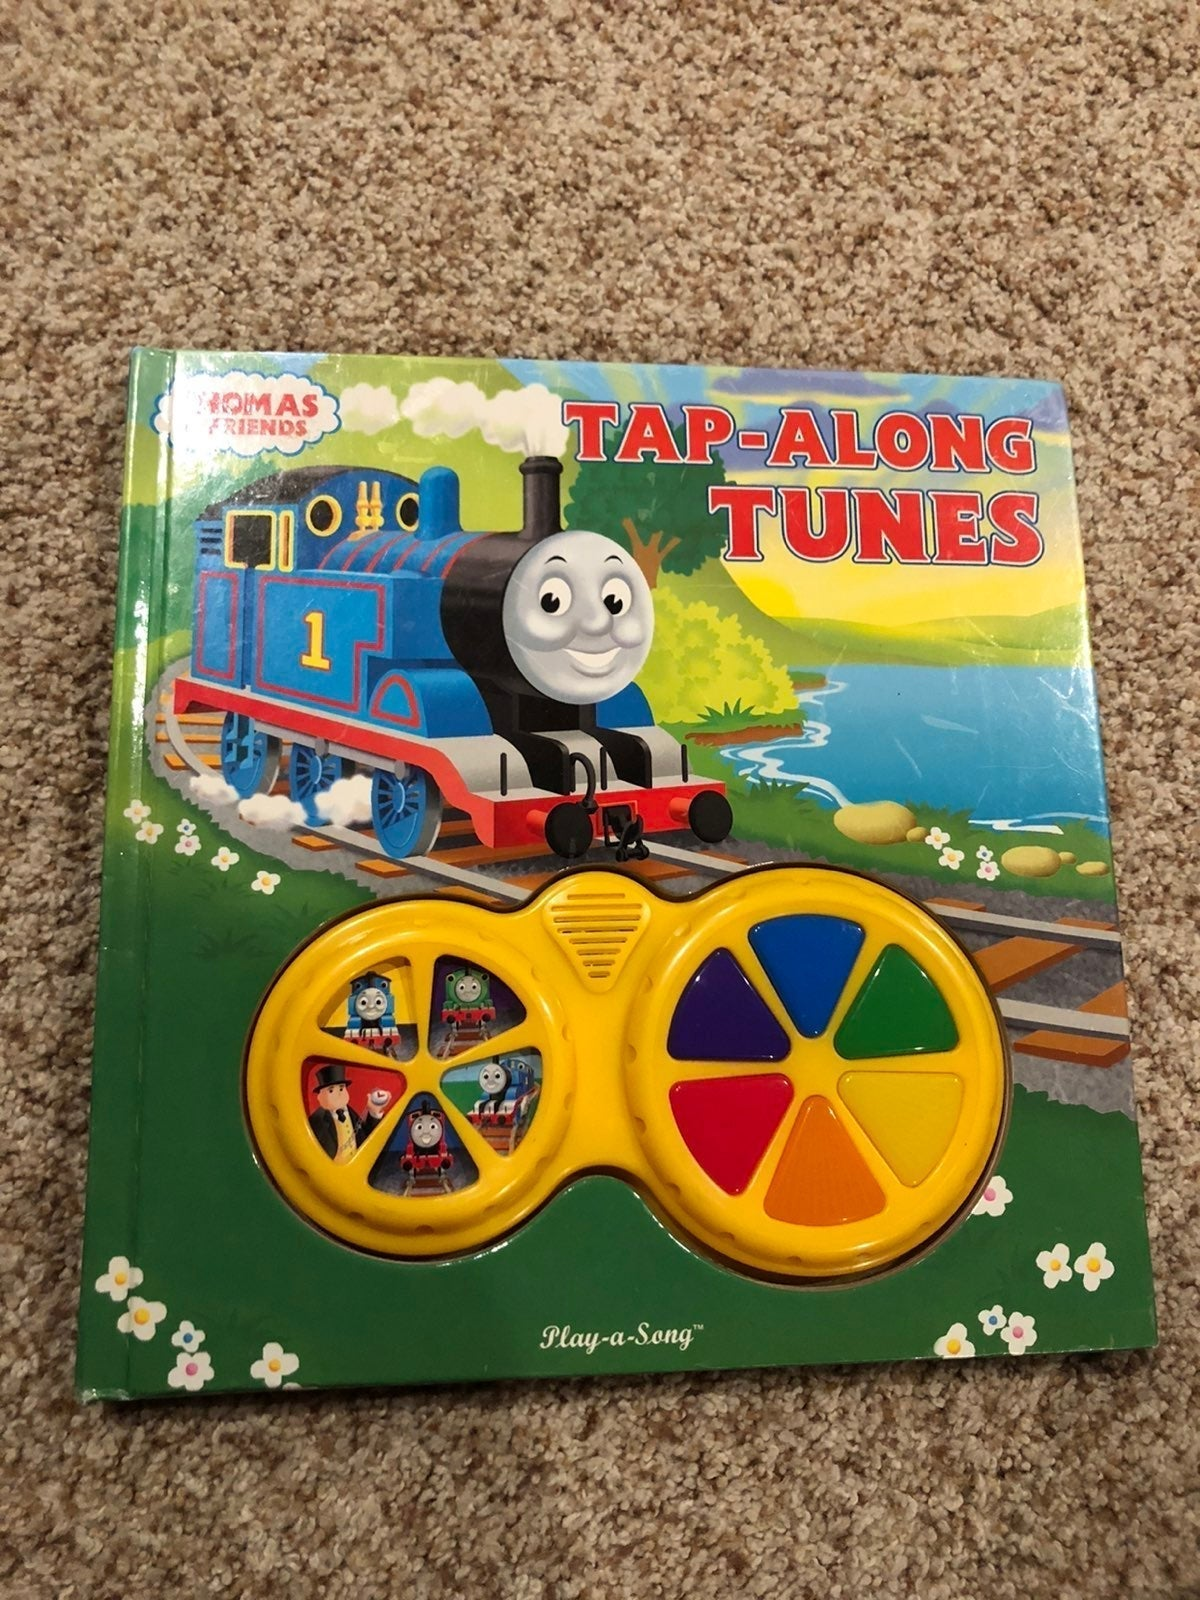 Thomas and friends sing along book